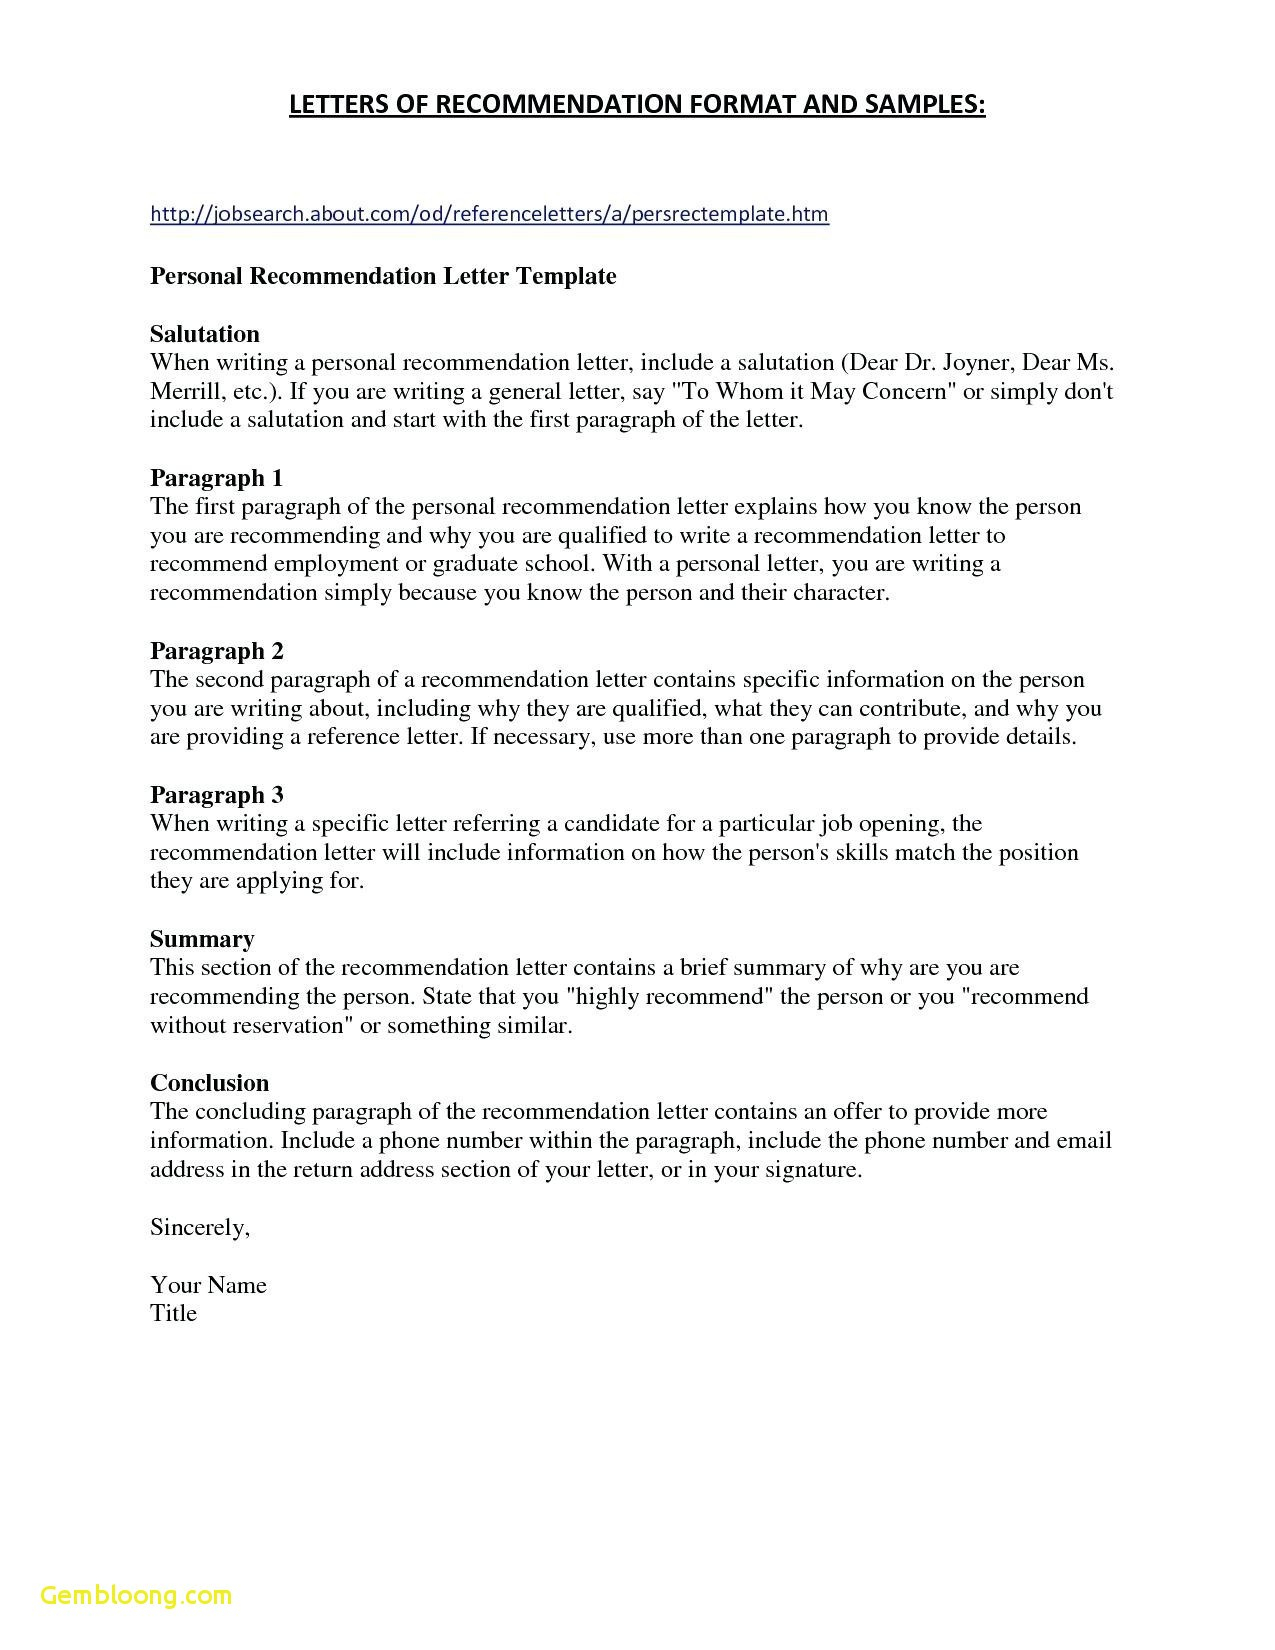 basic recommendation letter template Collection-Reference Letter format Personal Fresh References for Resume Template New Reference Letter format In Hindi 2-n